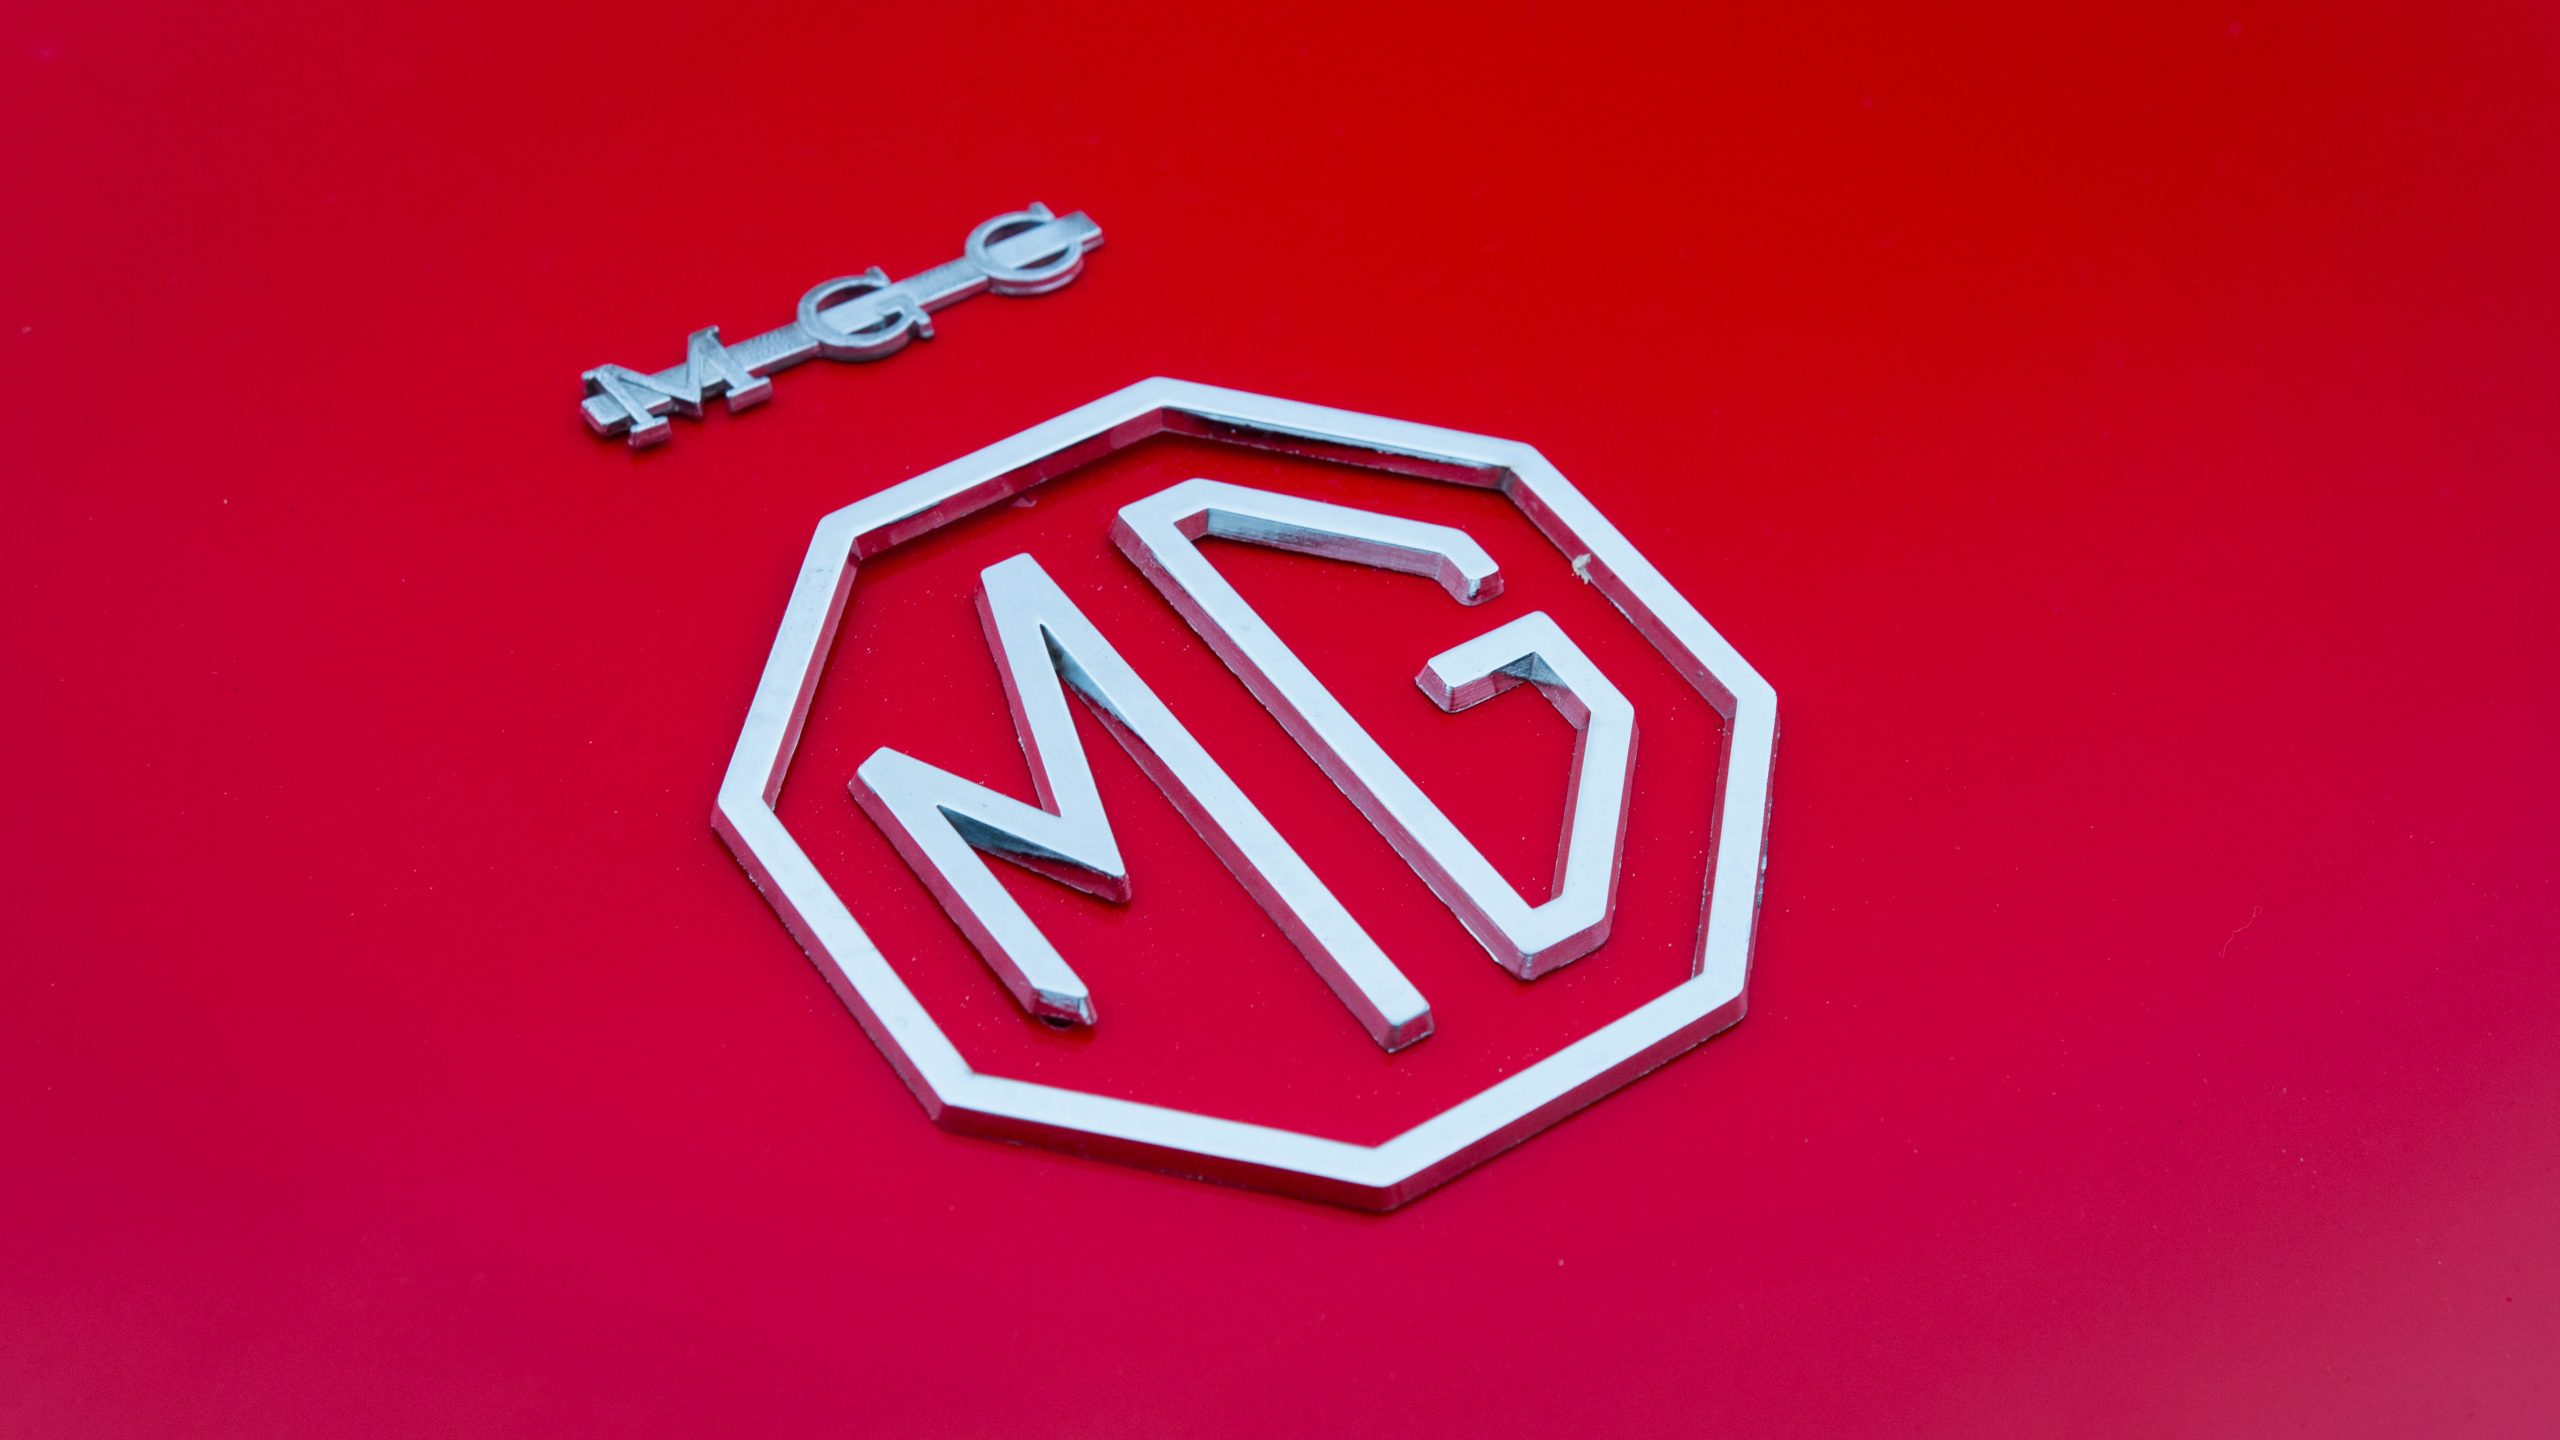 1969 MG MGC badge detail